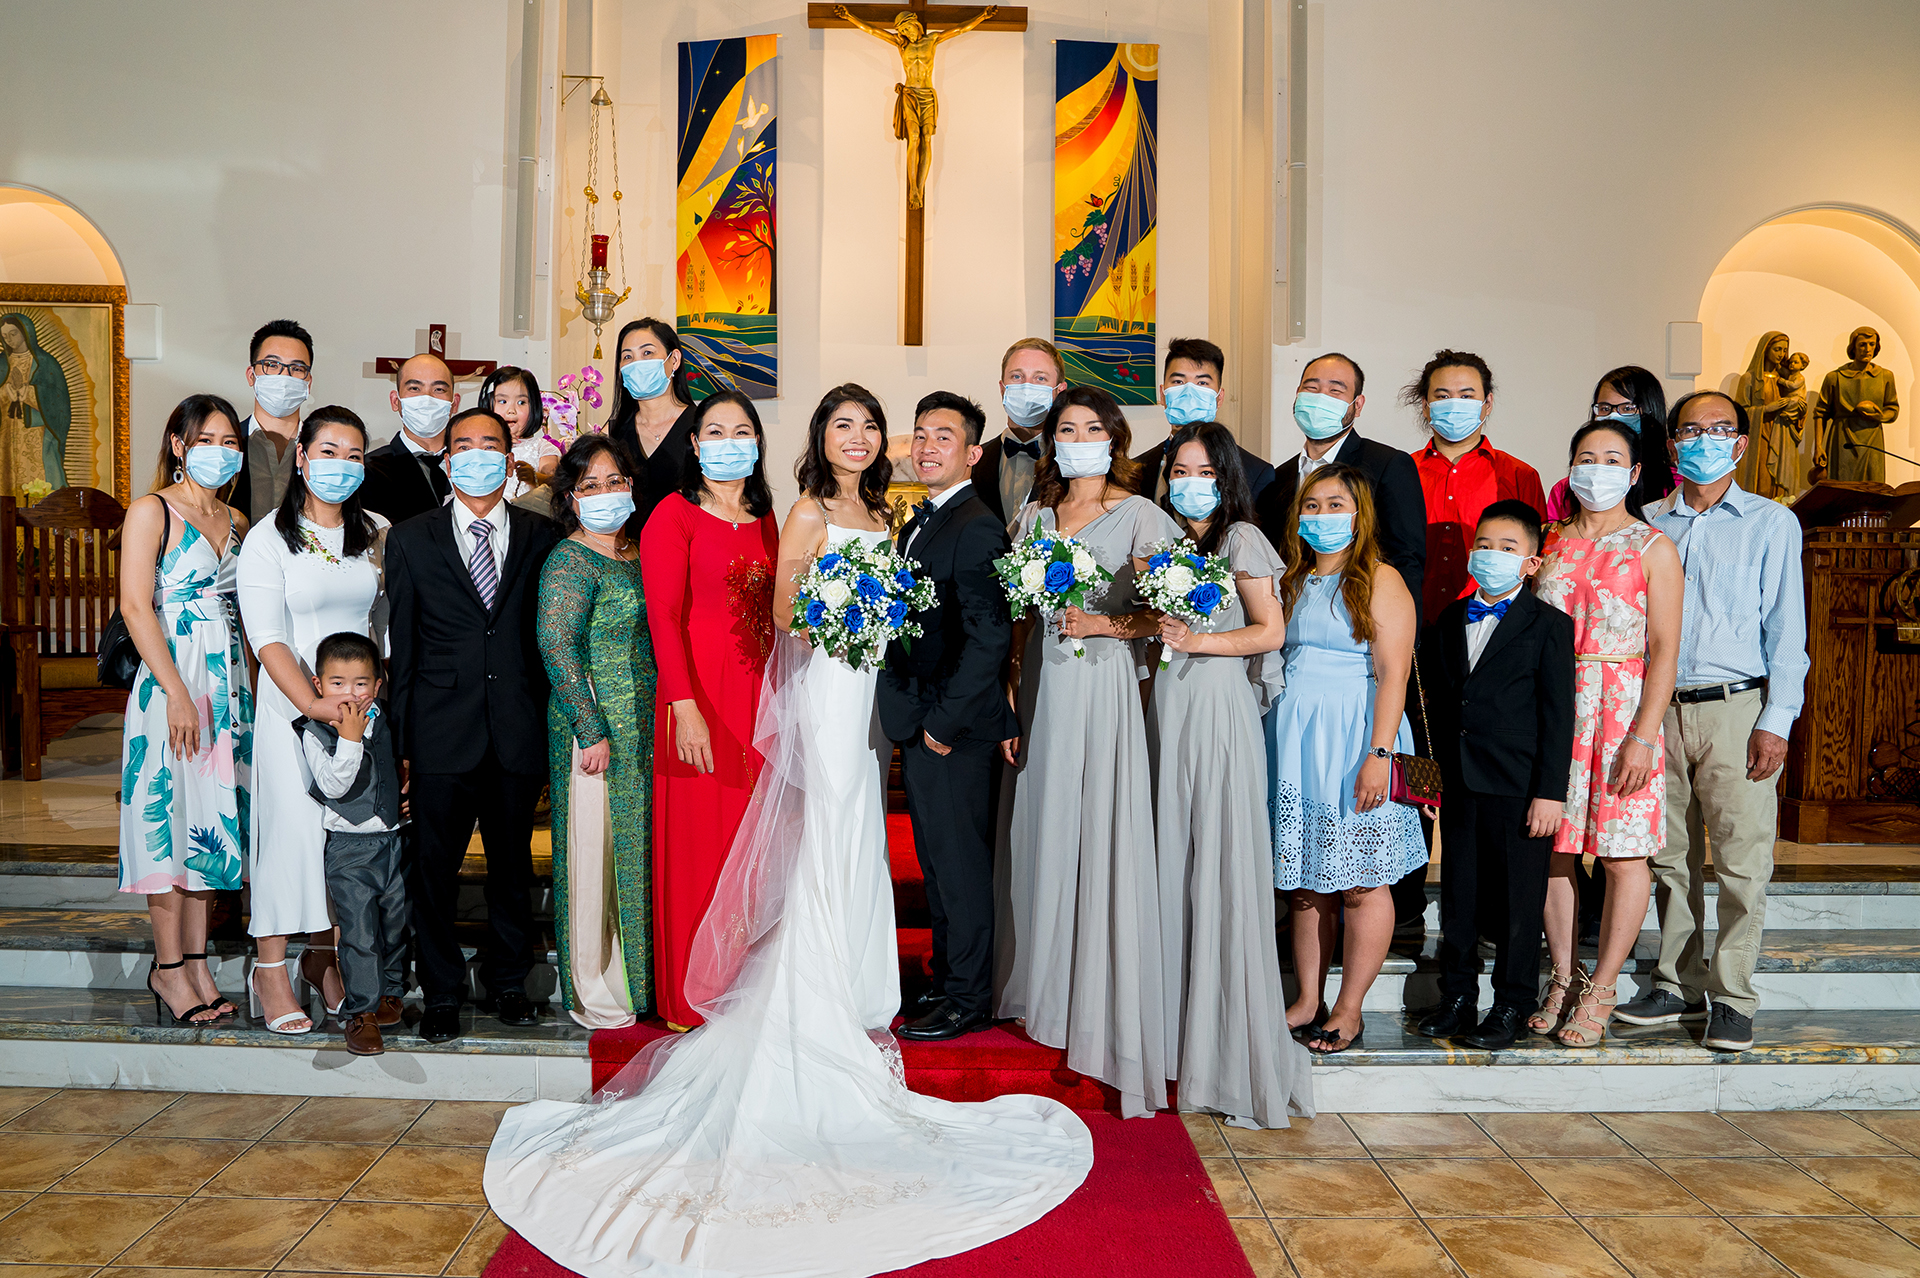 San Jose wedding family portrait during COVID | The bride and groom take a formal portrait with their family members